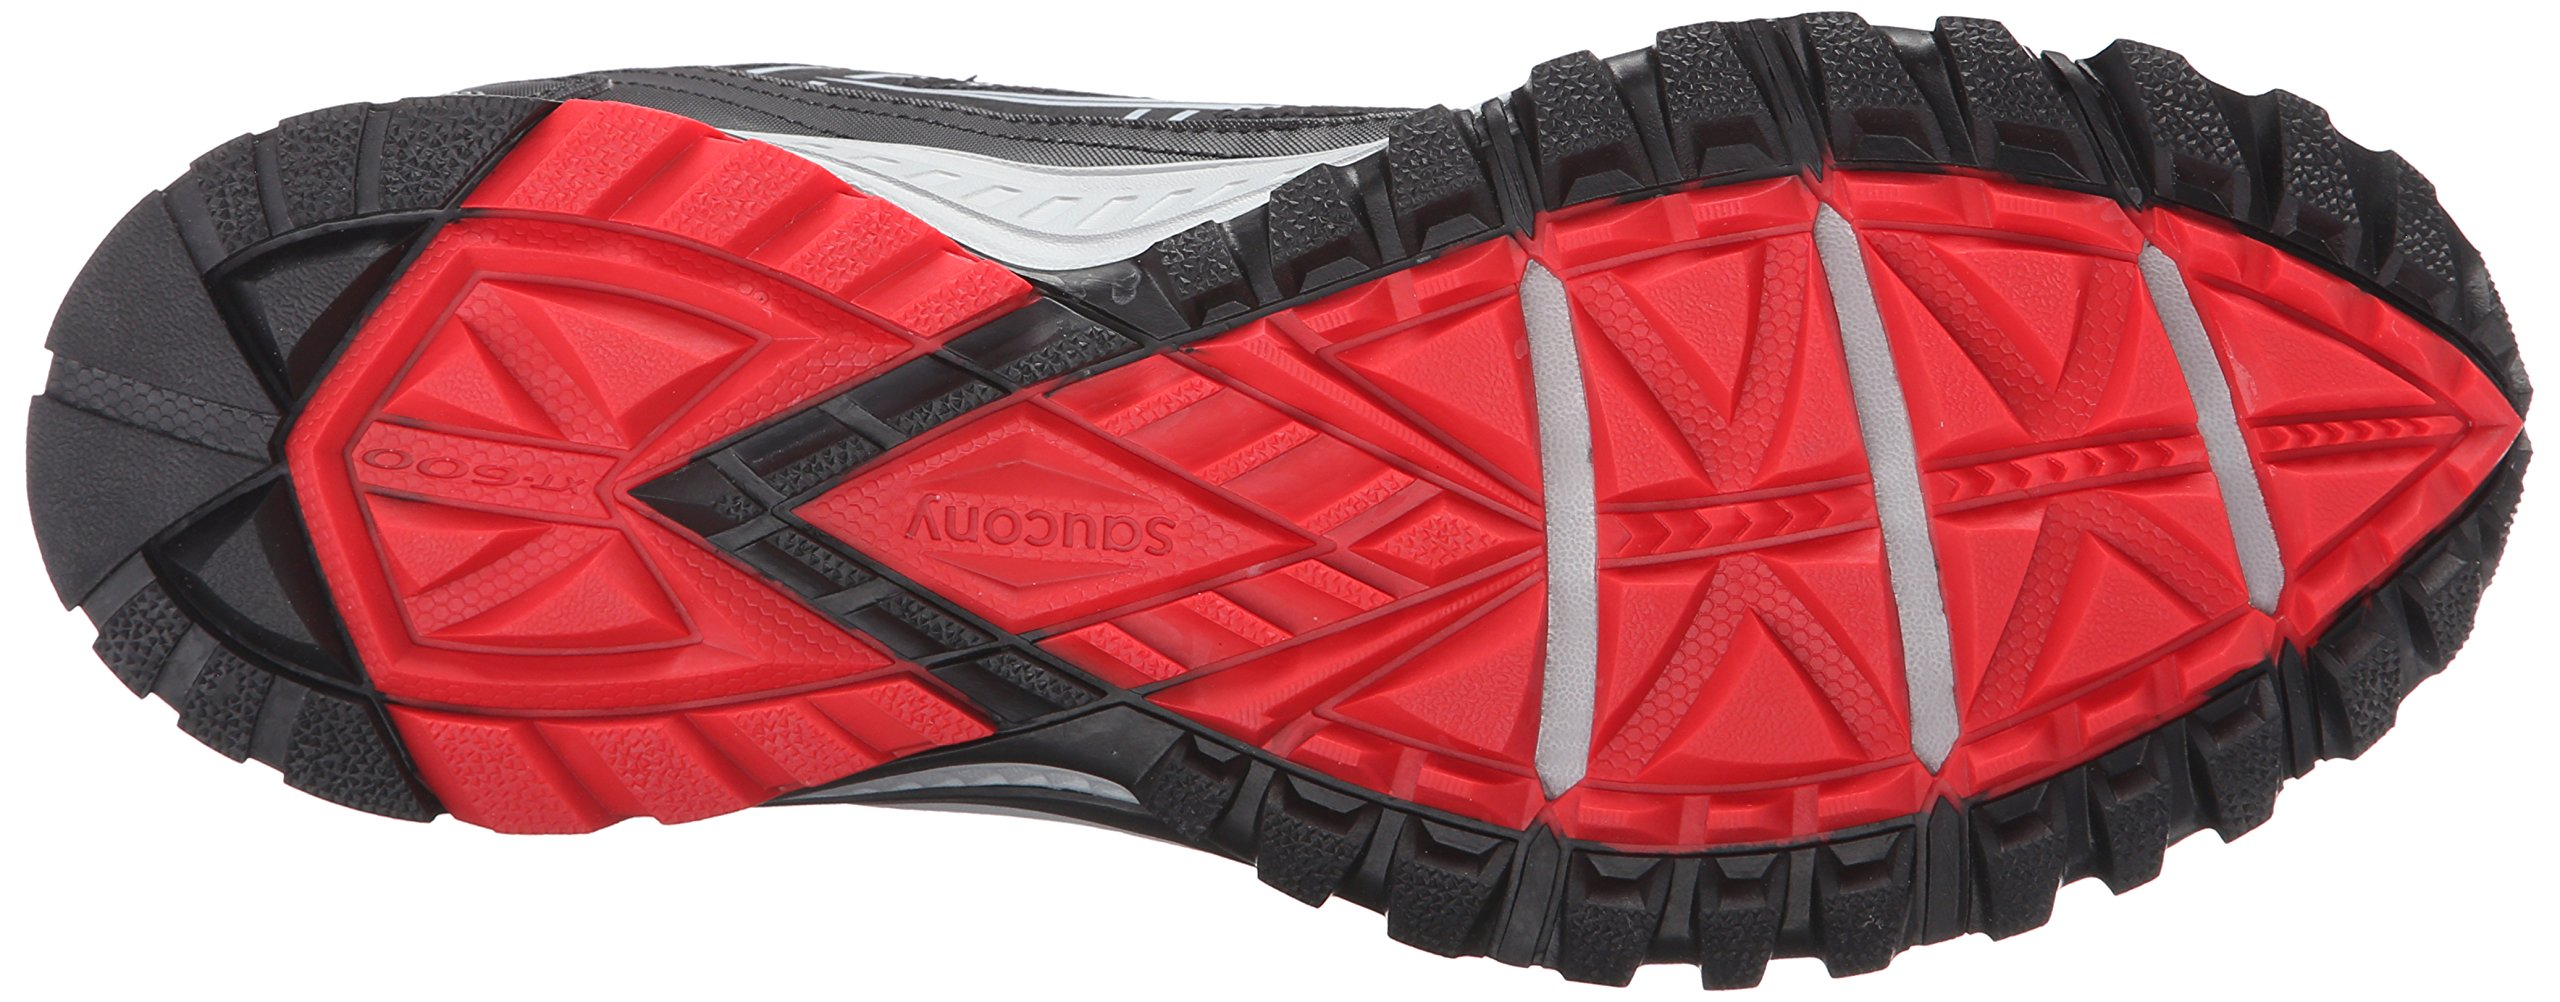 Saucony Men's Grid Excursion TR10 Running Shoe, Grey/Black/Red, 8 M US by Saucony (Image #3)